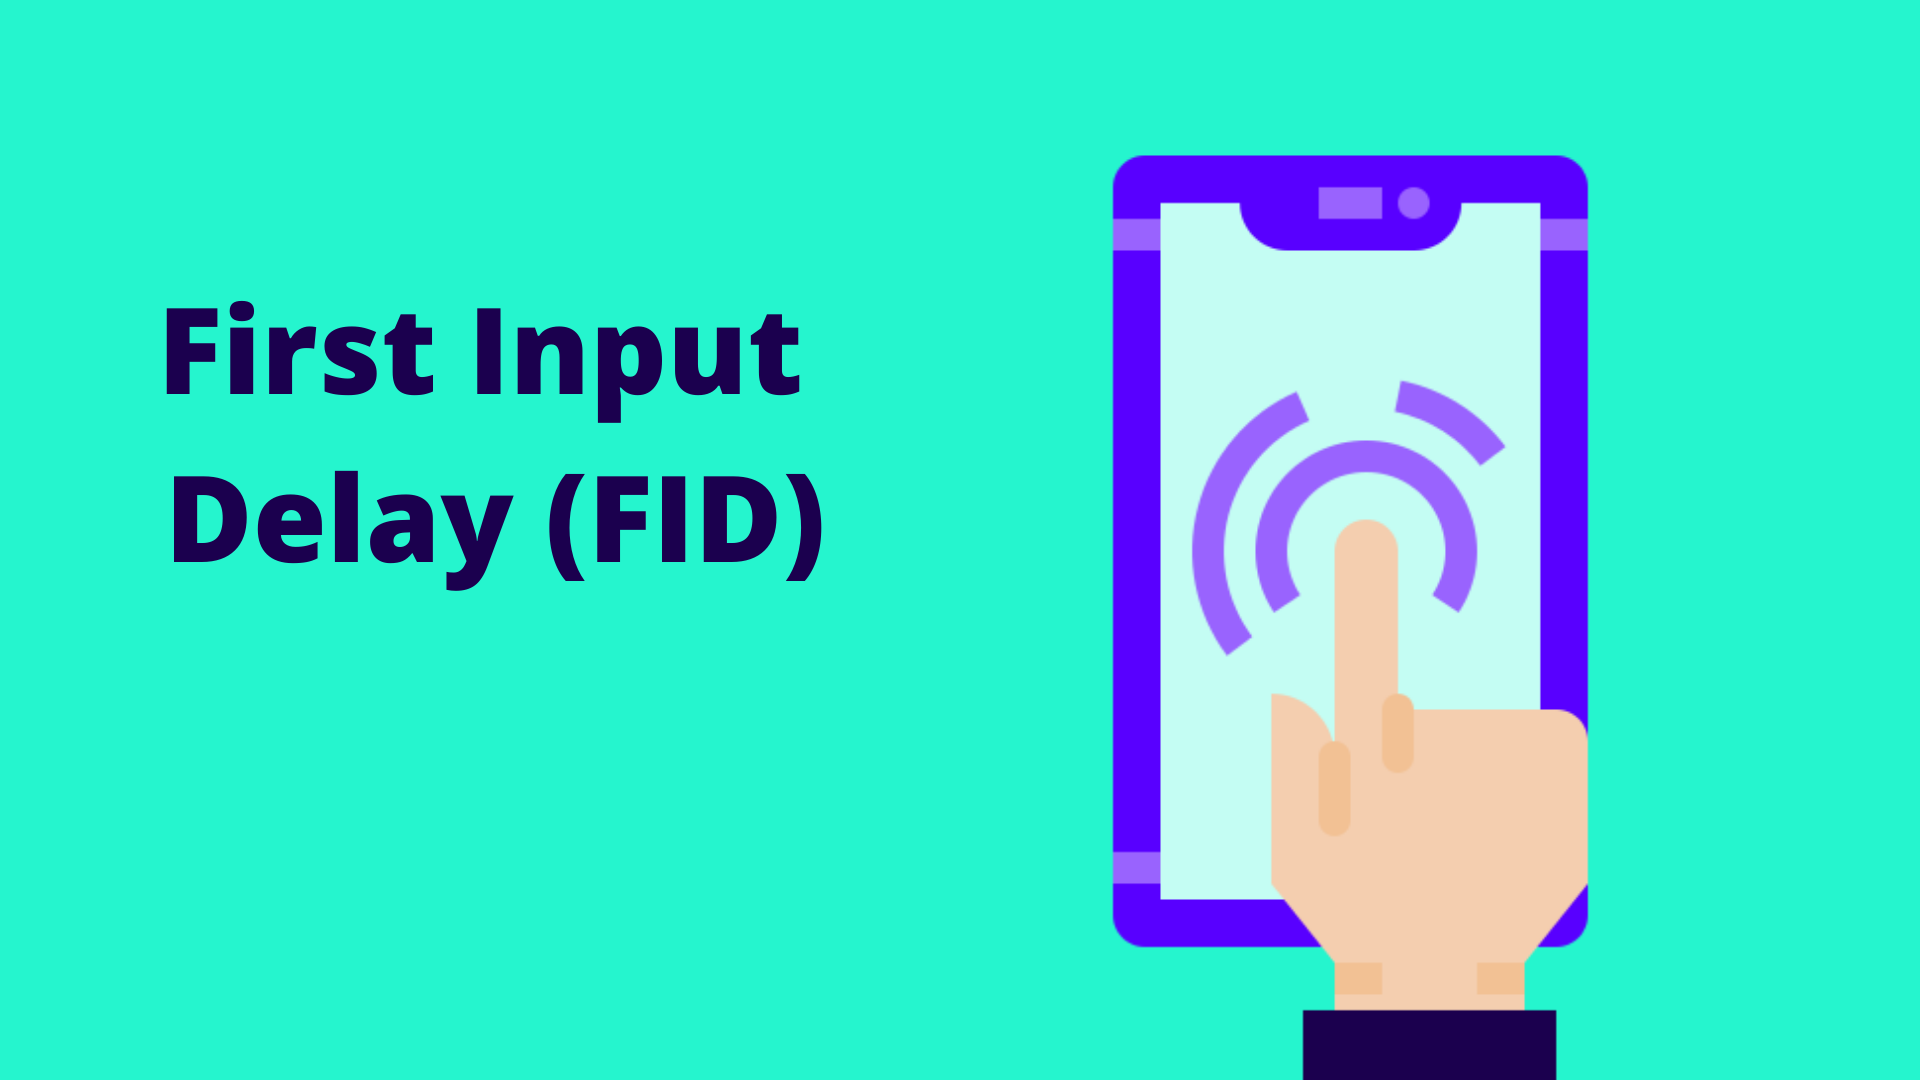 Everything You Need To Know About First Input Delay (FID)